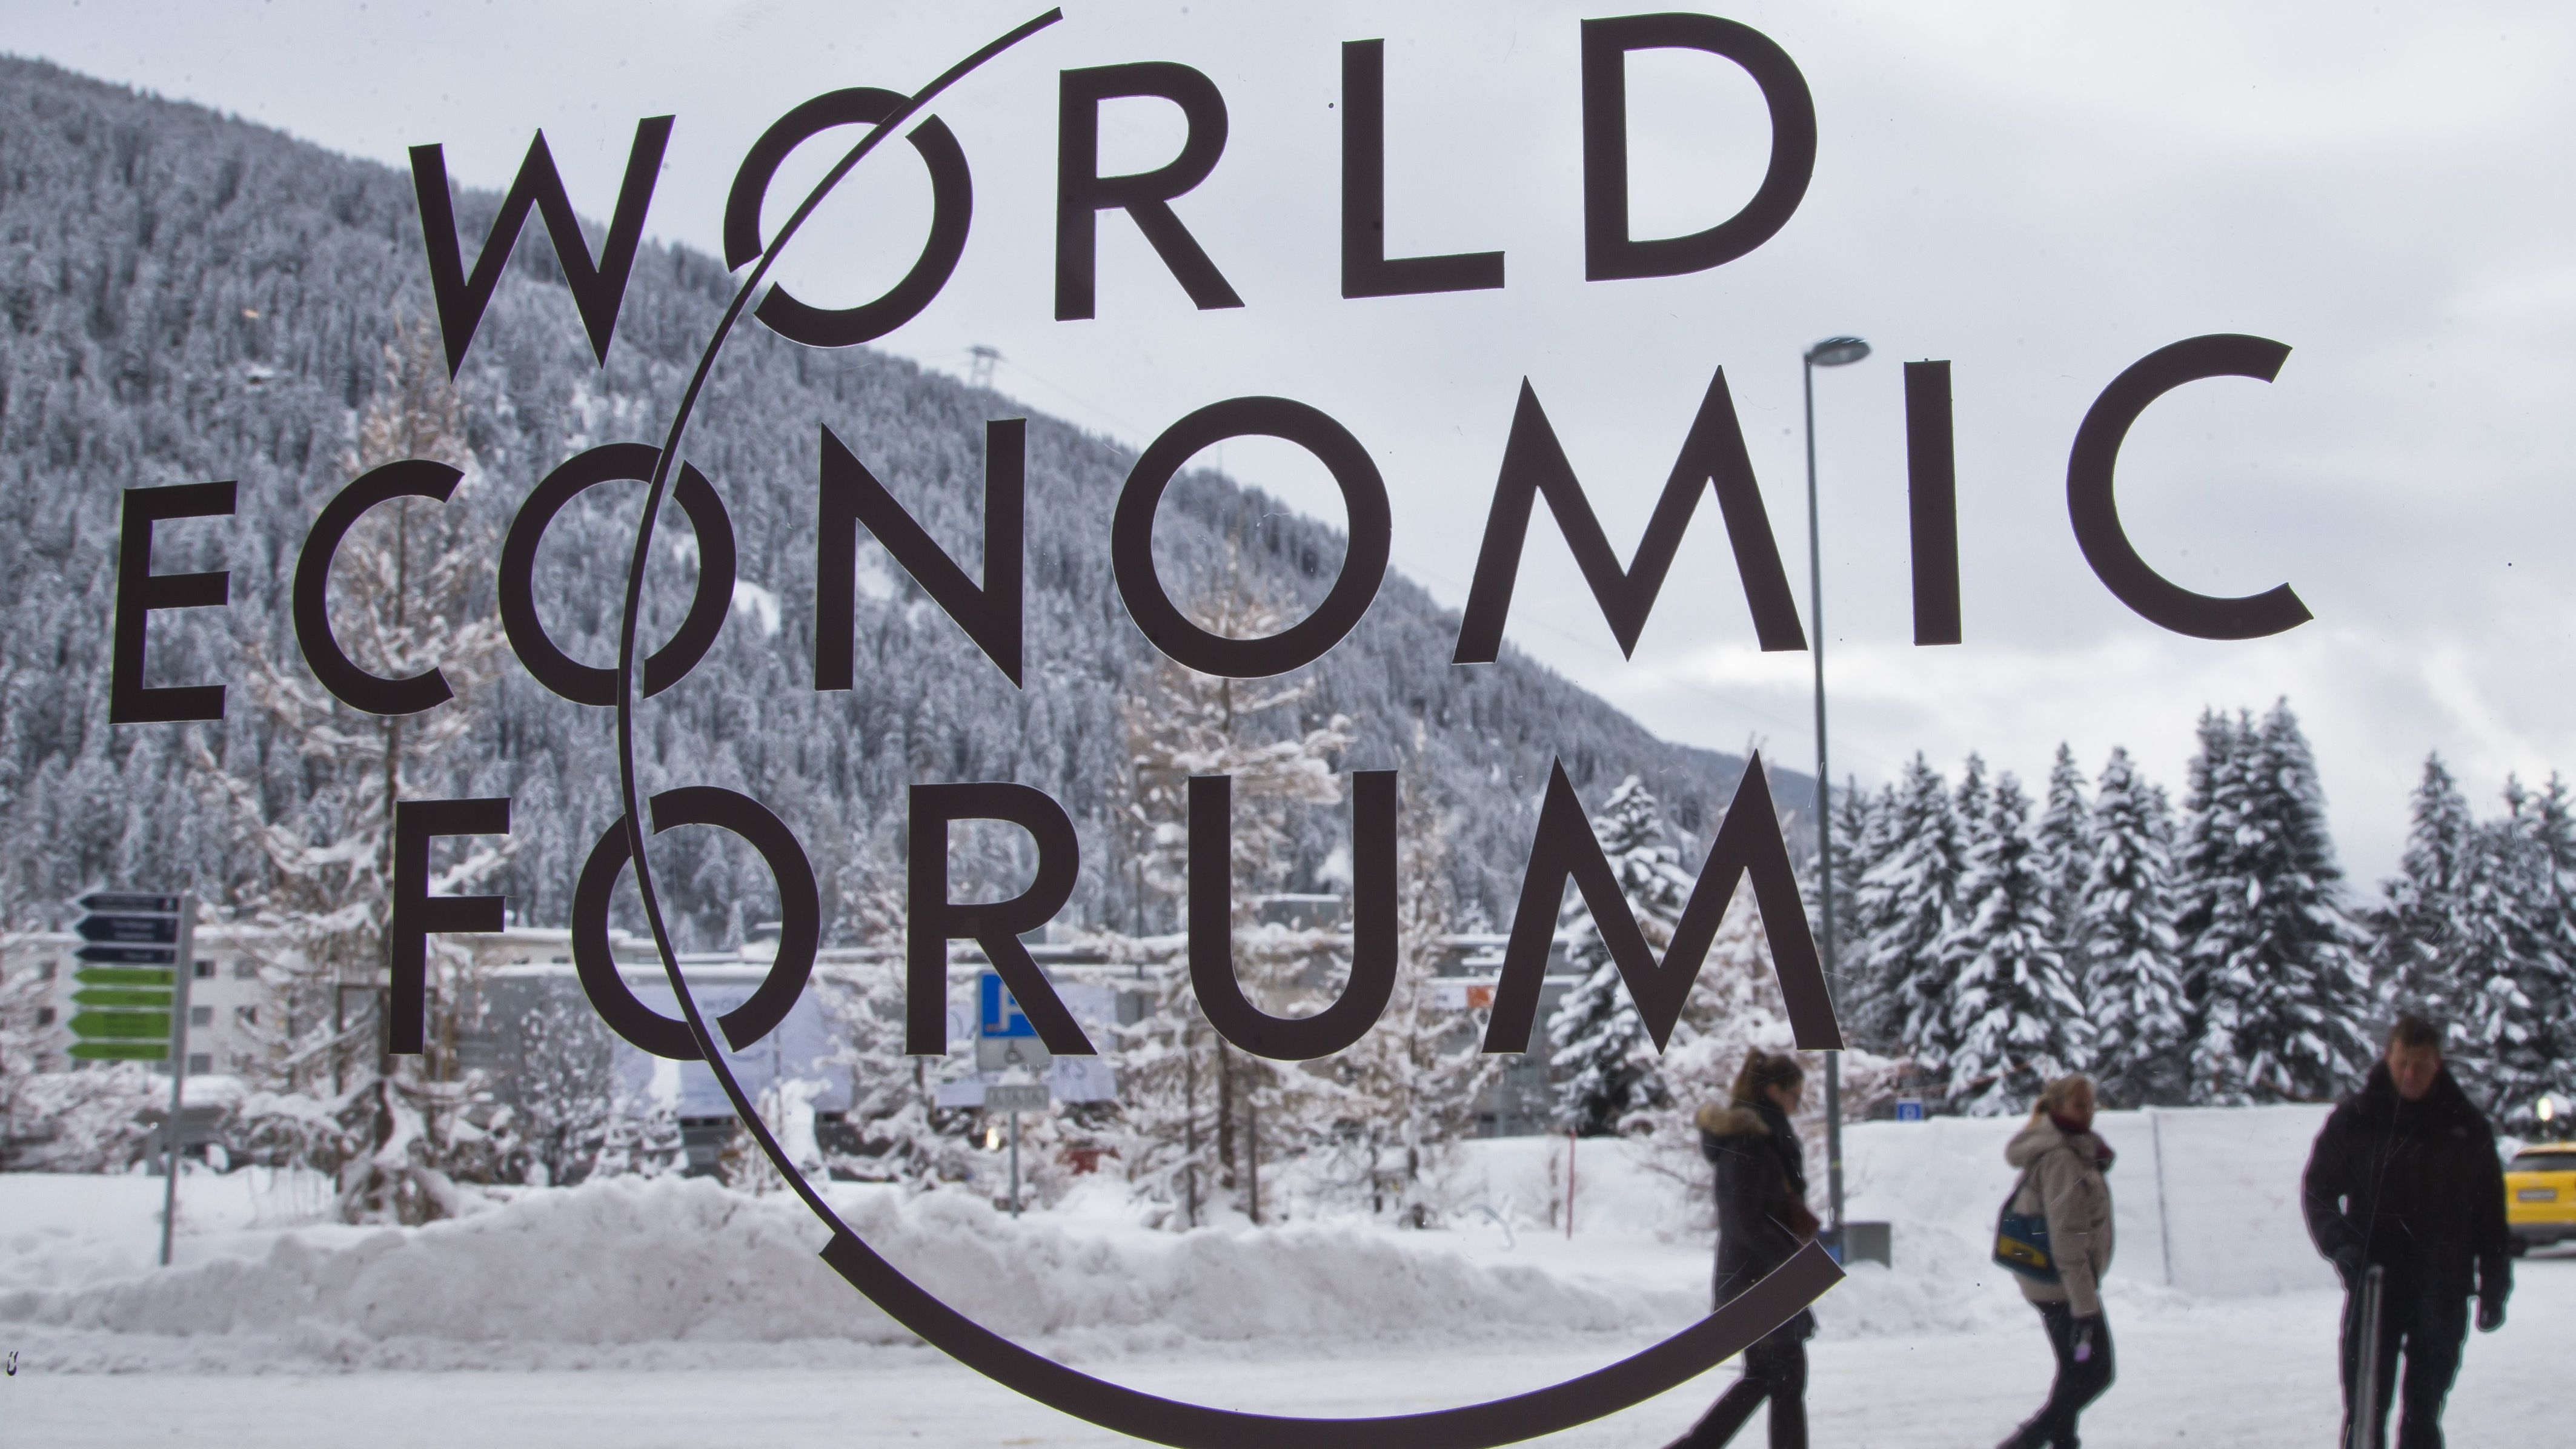 The logo of the World Economic Forum is visible through a window at the congress center where the annual meeting will take place in Davos, Switzerland, Sunday Jan. 15, 2017. Business and world leaders are gathering for the annual meeting in Davos. (AP Photo/Michel Euler)